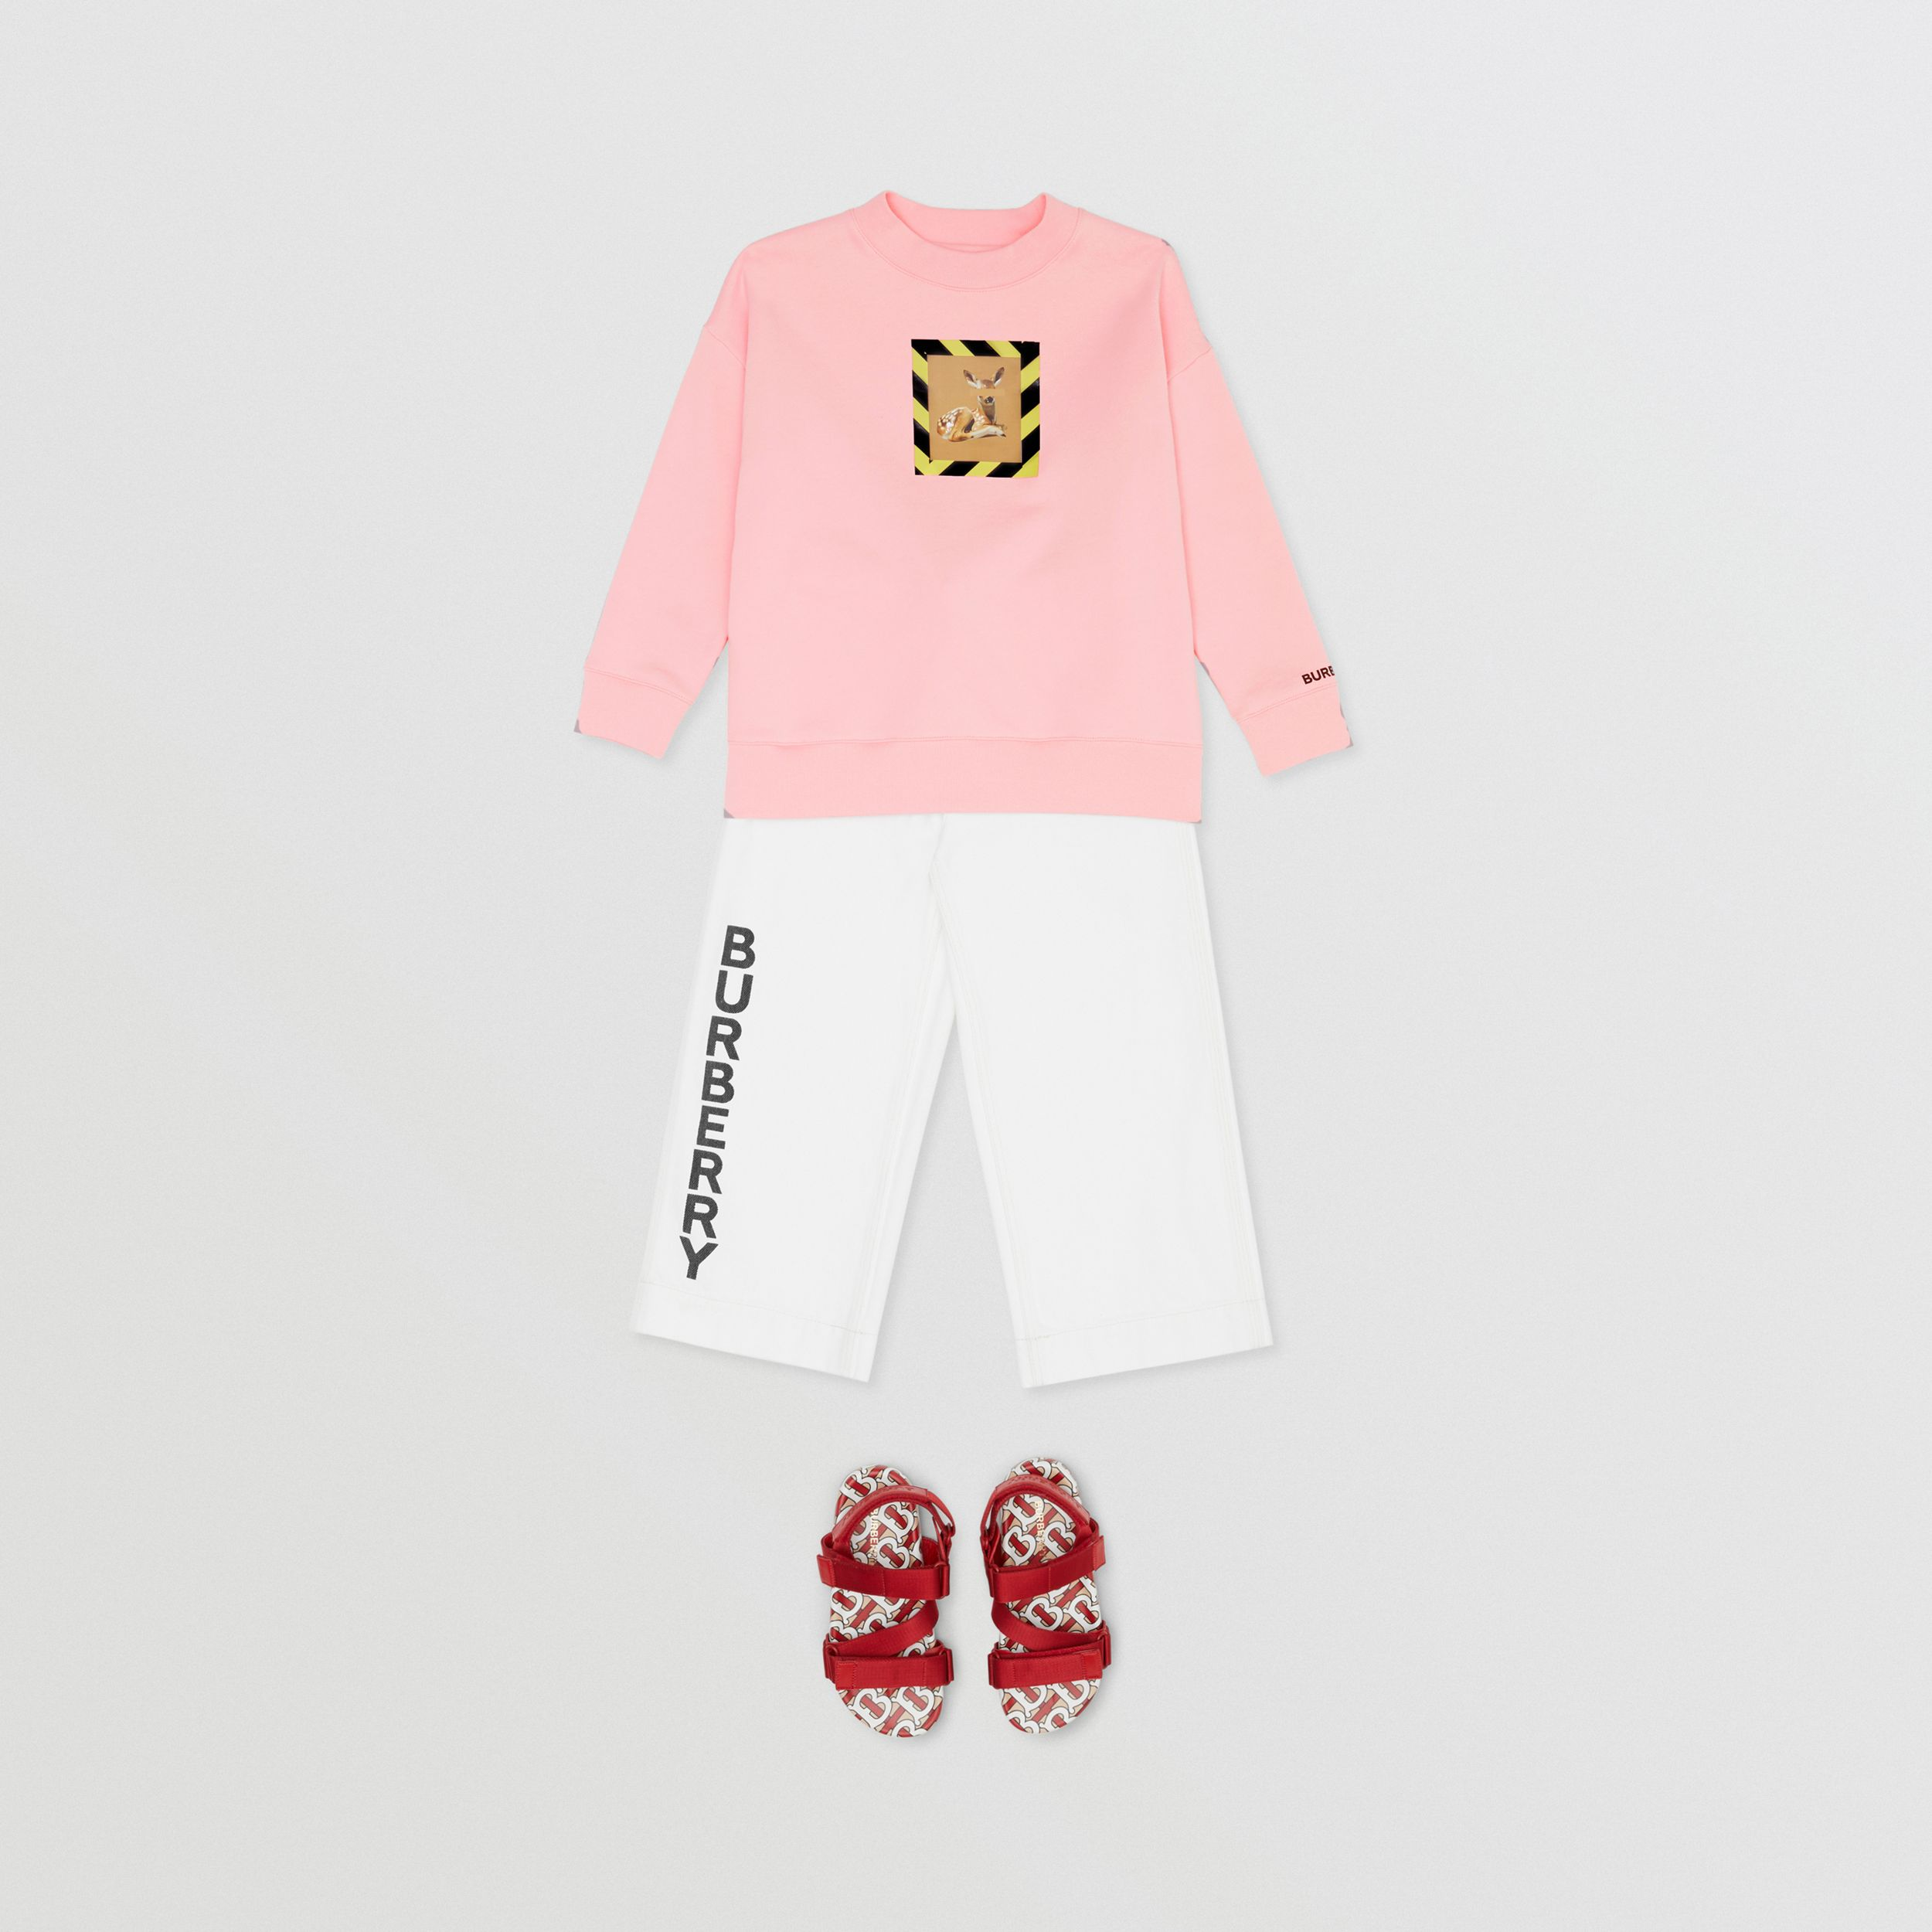 Deer Print Cotton Sweatshirt in Candy Pink | Burberry - 4